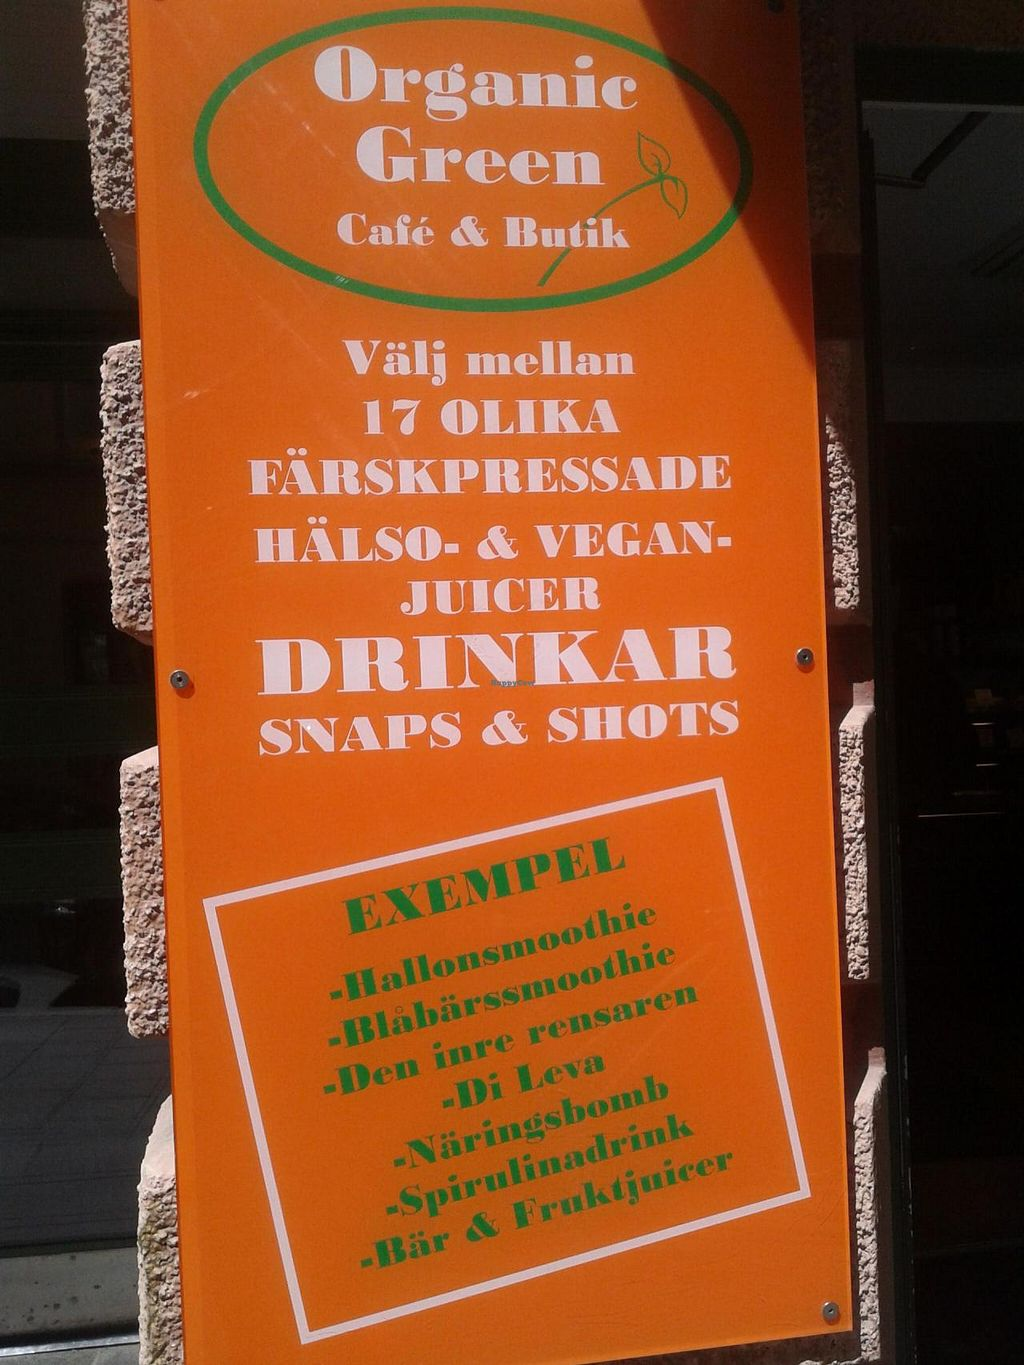 """Photo of Organic Green Butik and Cafe  by <a href=""""/members/profile/miralola"""">miralola</a> <br/>Besides the entry <br/> June 16, 2015  - <a href='/contact/abuse/image/1187/106080'>Report</a>"""